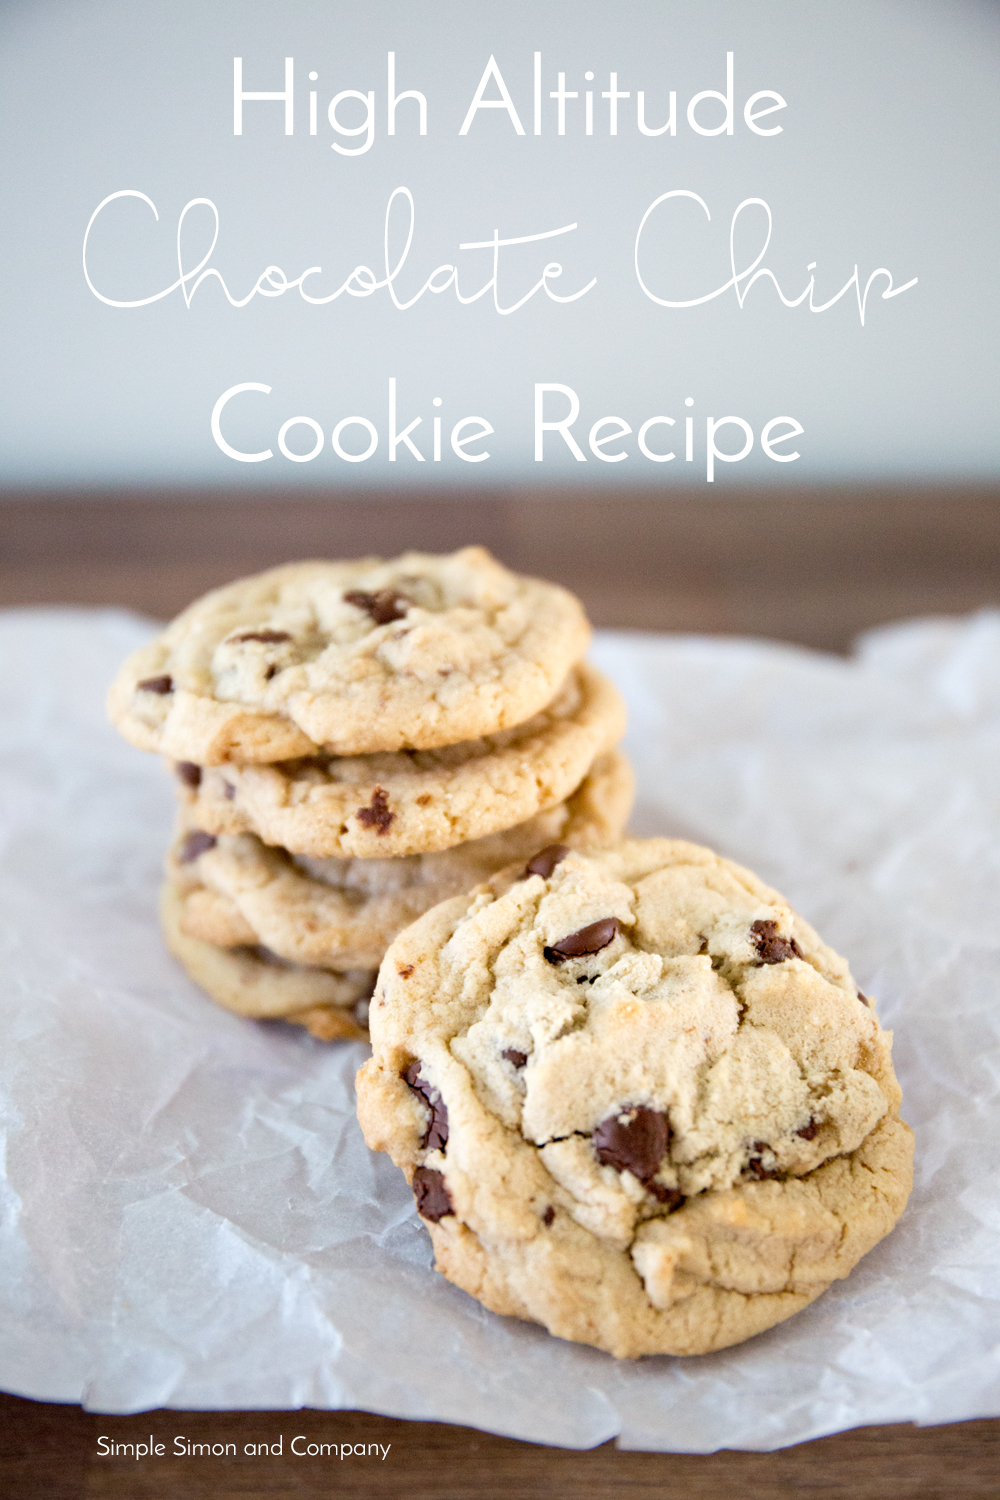 High Altitude Chocolate Chip Cookie Recipe - Simple Simon and Company